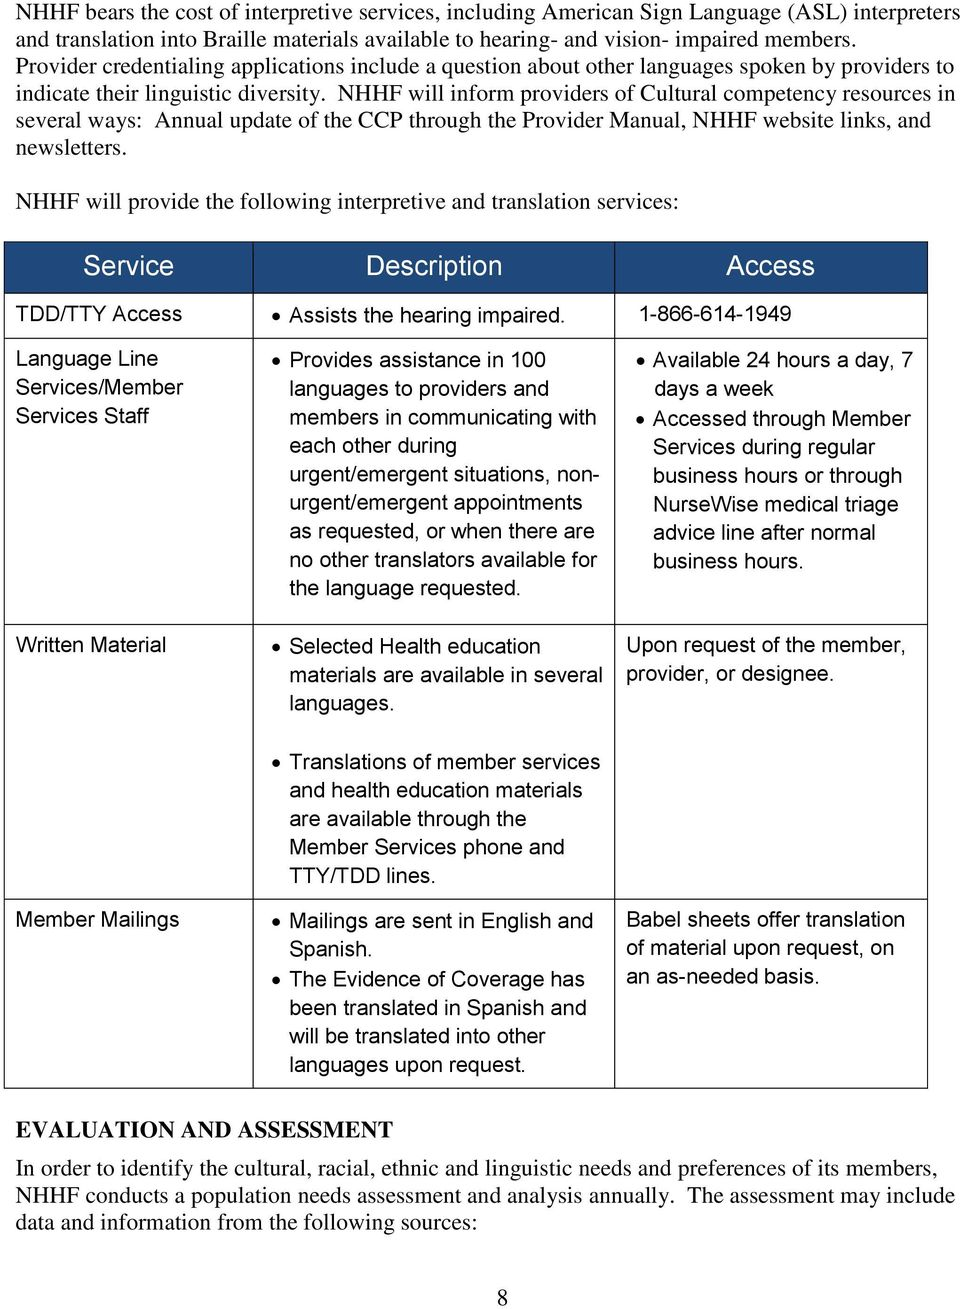 NHHF will inform providers of Cultural competency resources in several ways: Annual update of the CCP through the Provider Manual, NHHF website links, and newsletters.